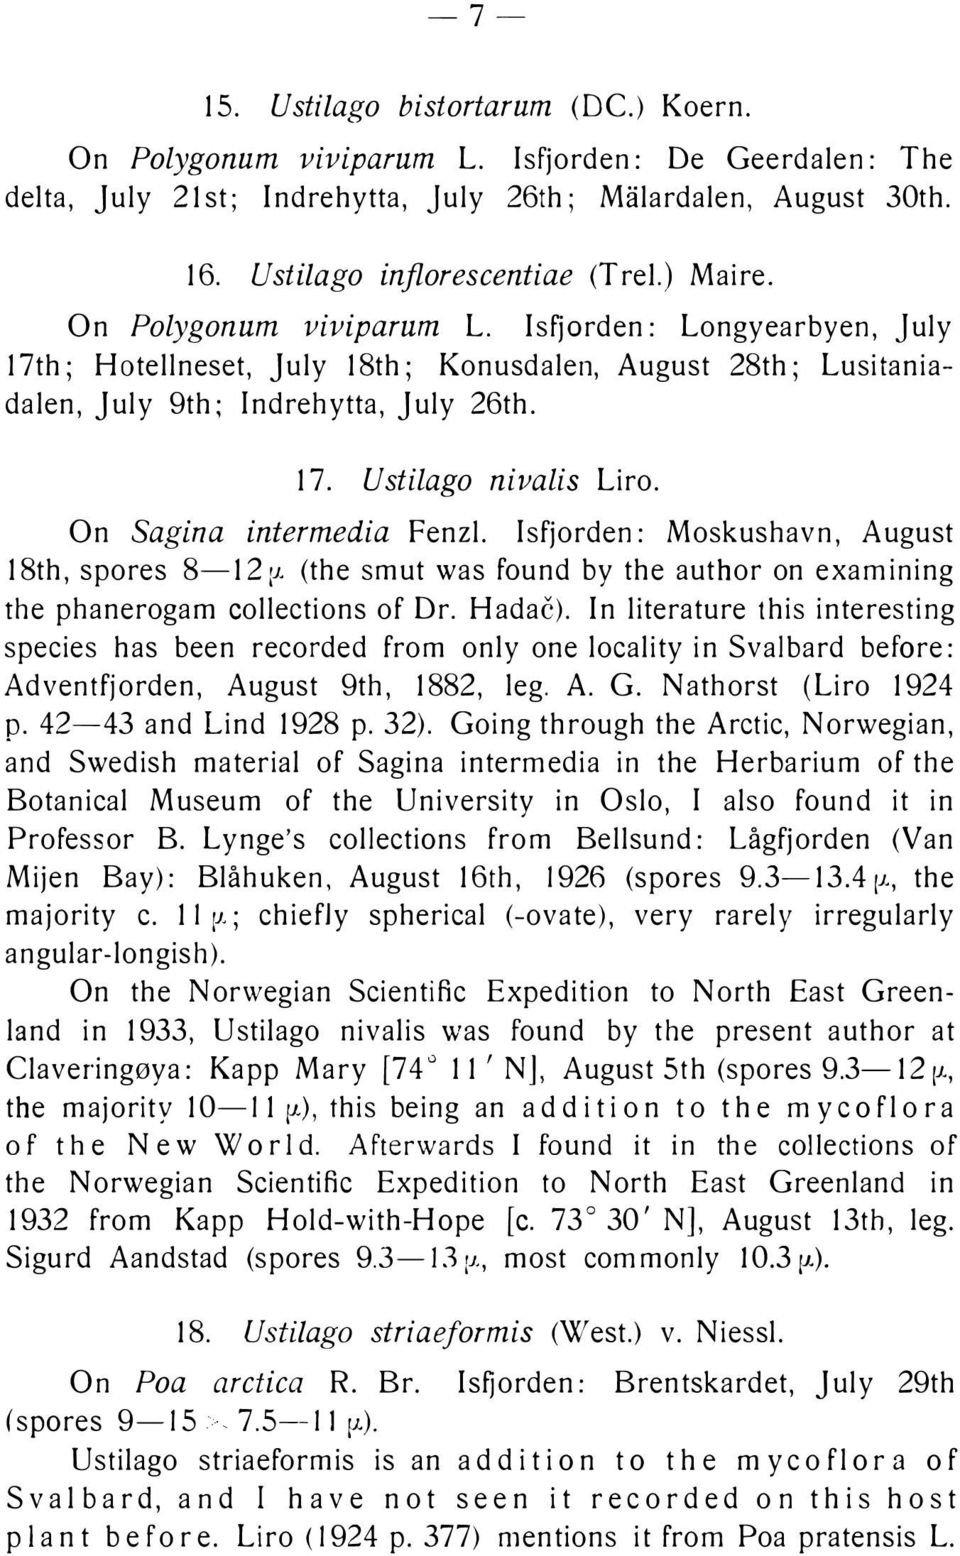 On Sagina intermedia Fenzl. Isfjorden: Moskushavn, August 18th, spores 8-12 :J. (the smut was found by the author on examining the phanerogam collections of Dr. Hadac).